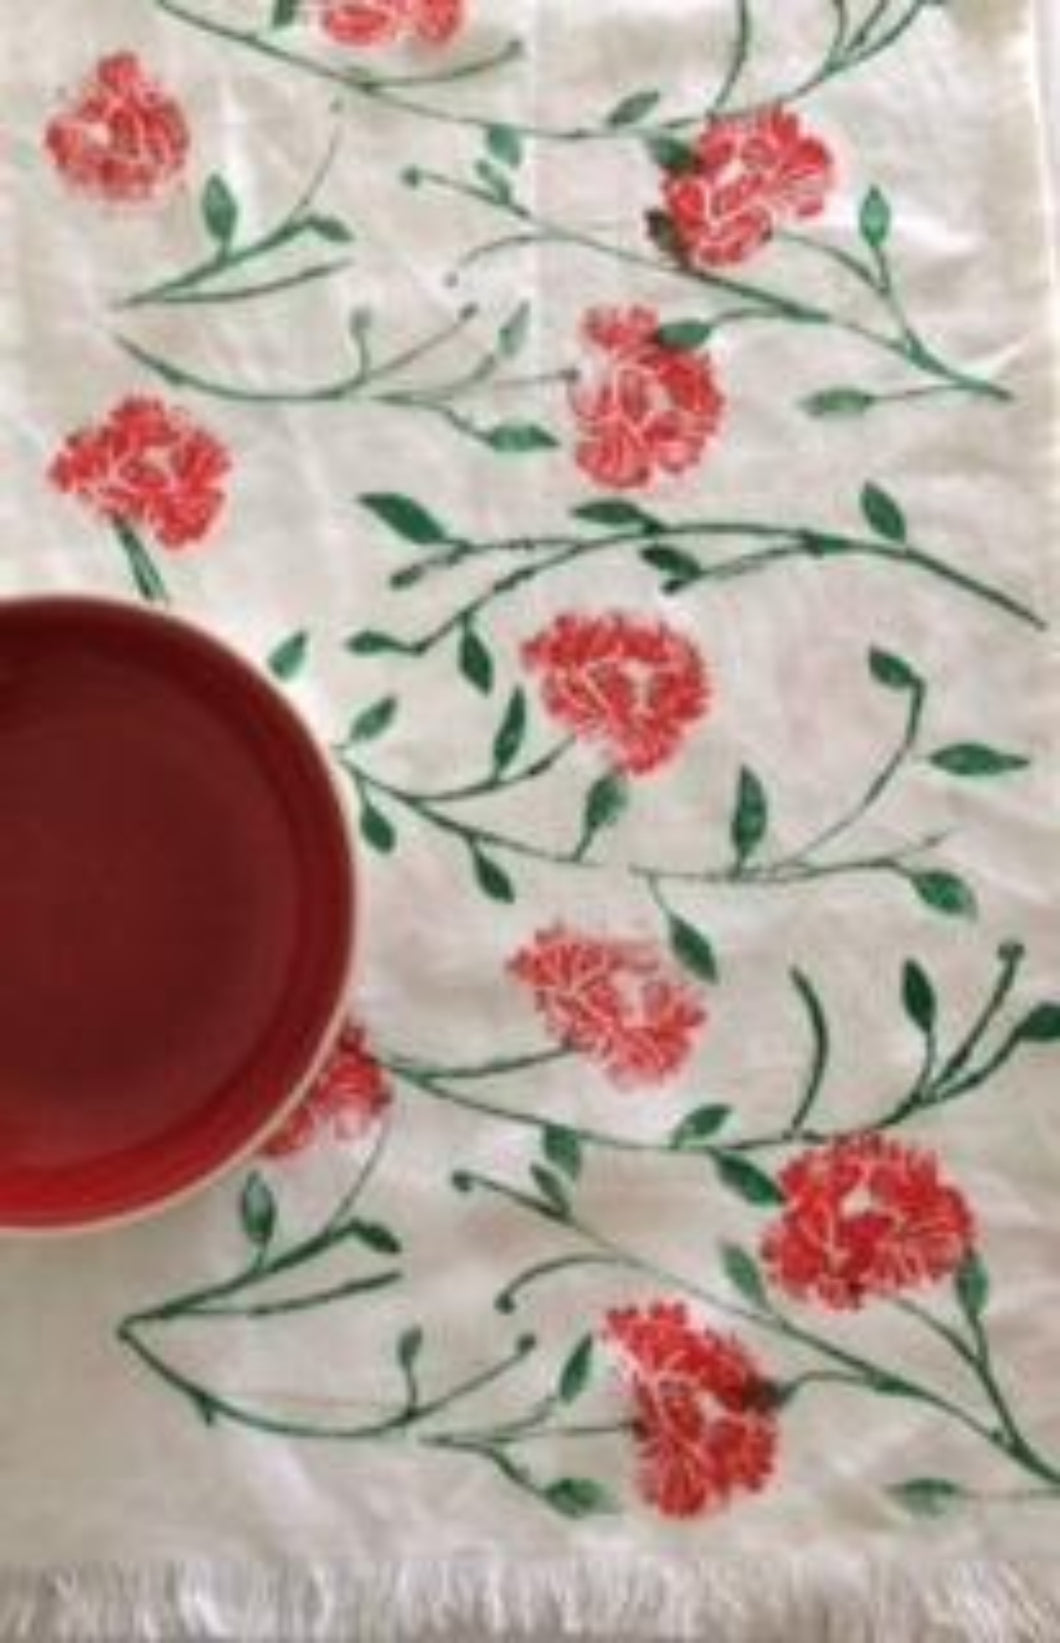 RED PEONY TABLE RUNNER